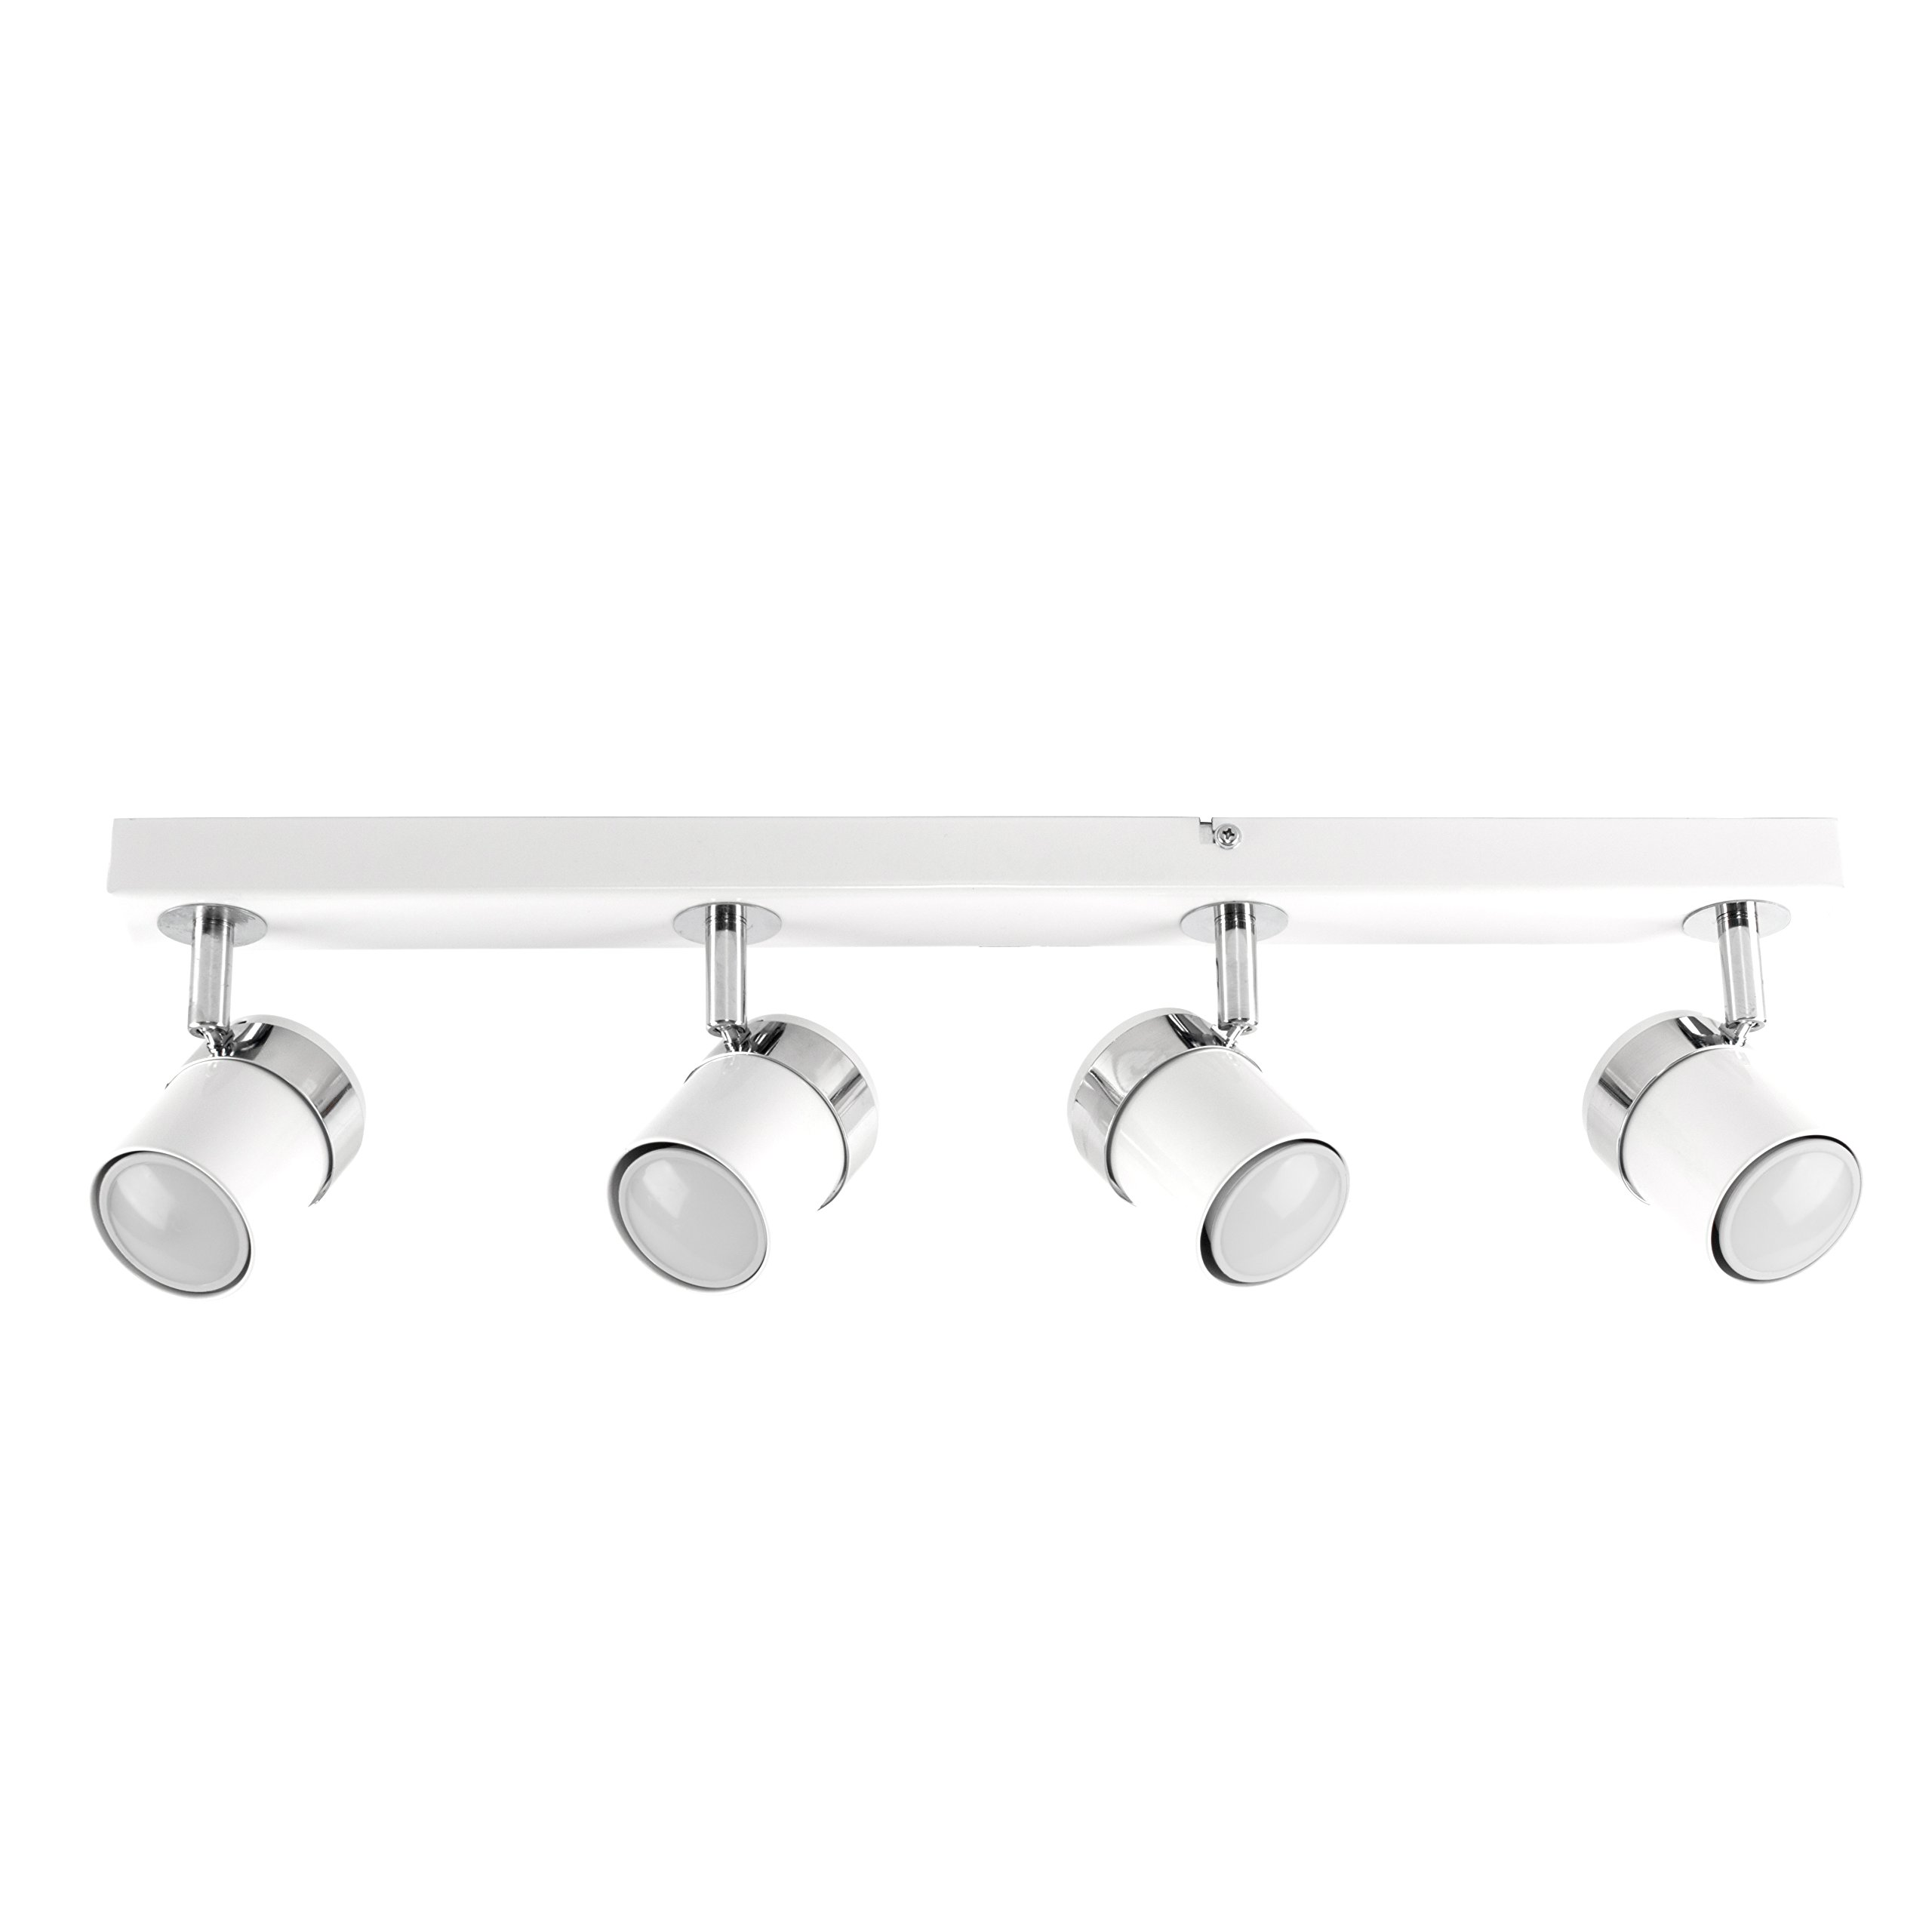 Kitchen Spotlights Amazoncouk - Kitchen spot light fittings